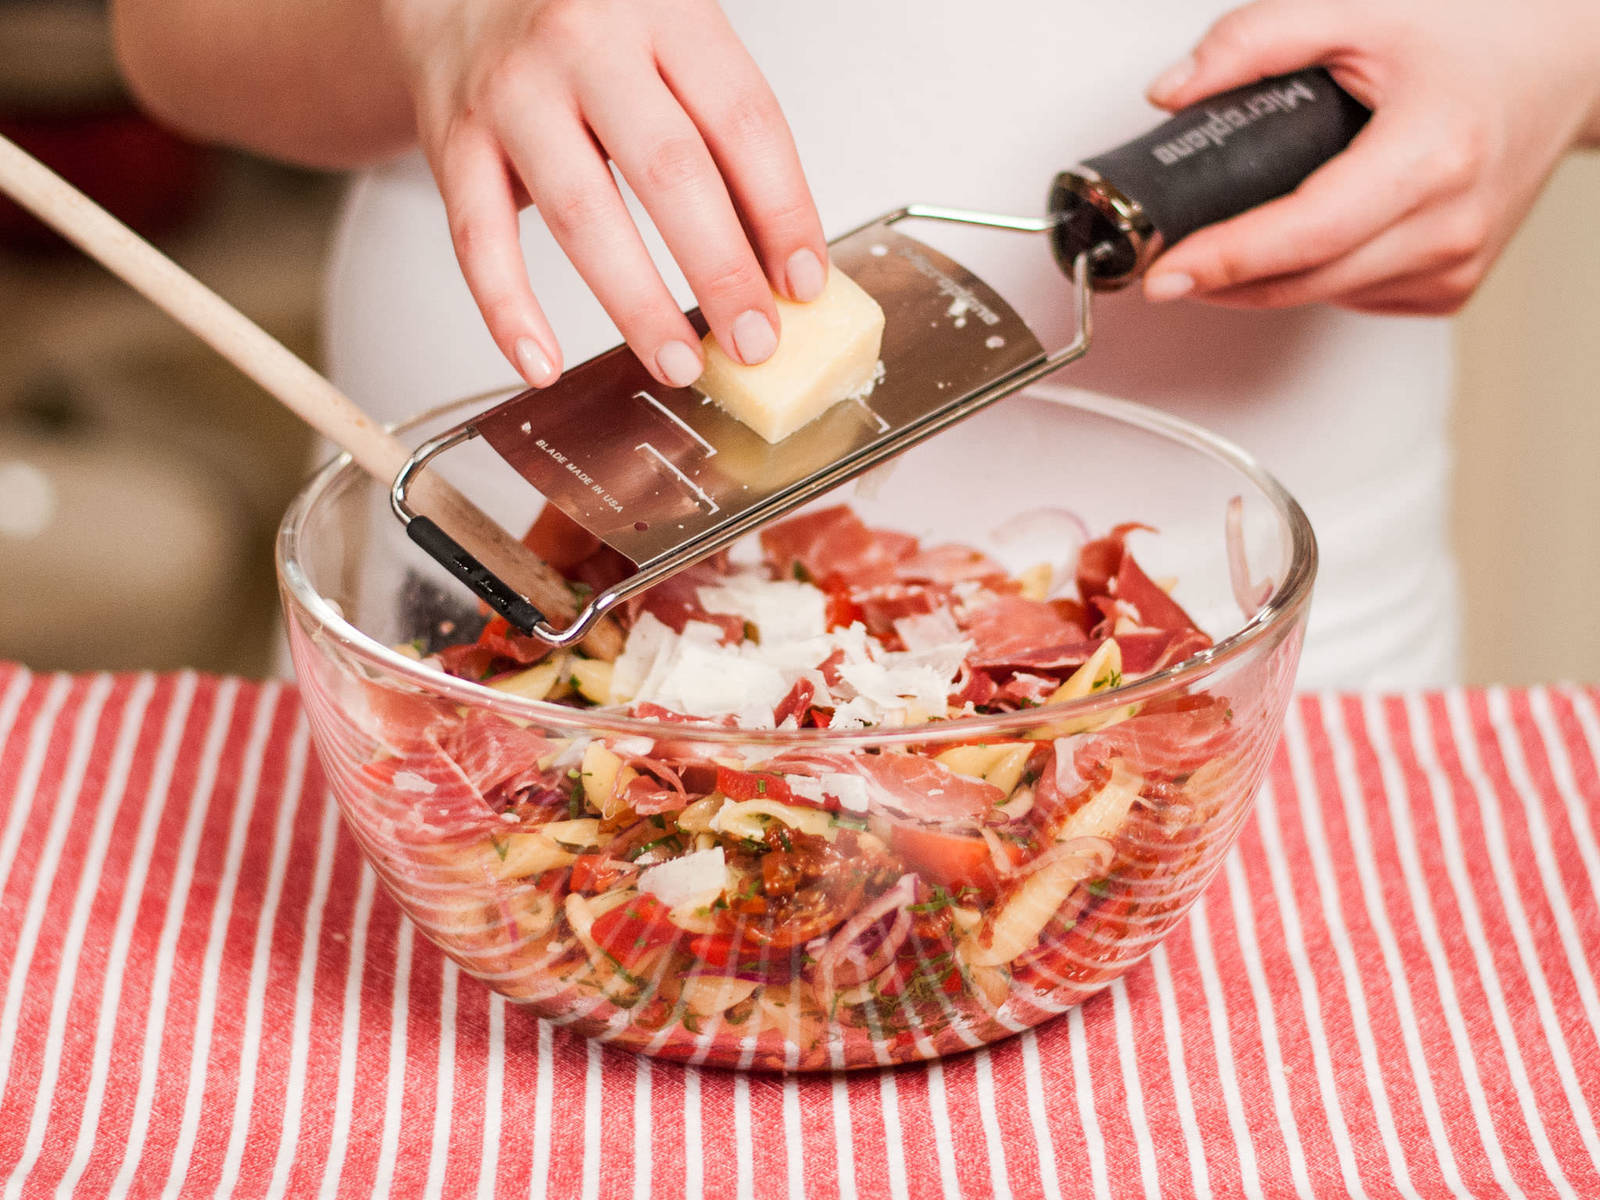 Tear Serrano ham into pieces and add to salad. Mix well and top with Parmesan shavings to serve.